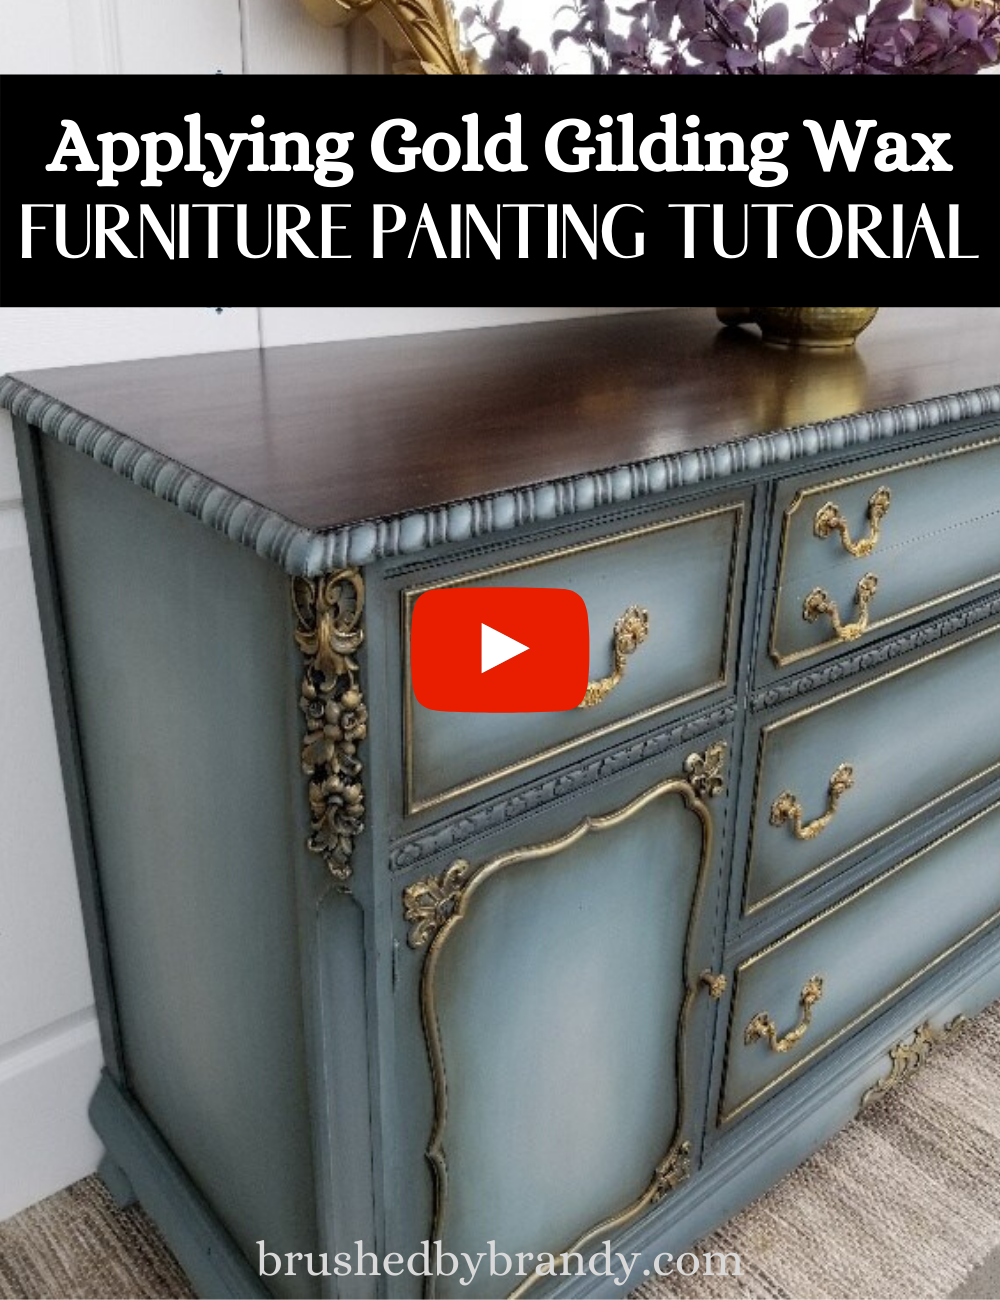 Video Applying Gold Gilding Wax Furniture Painting Tutorial Brushed By Brandy Furniture Painting Tutorial Painting Furniture Diy Gilding Wax